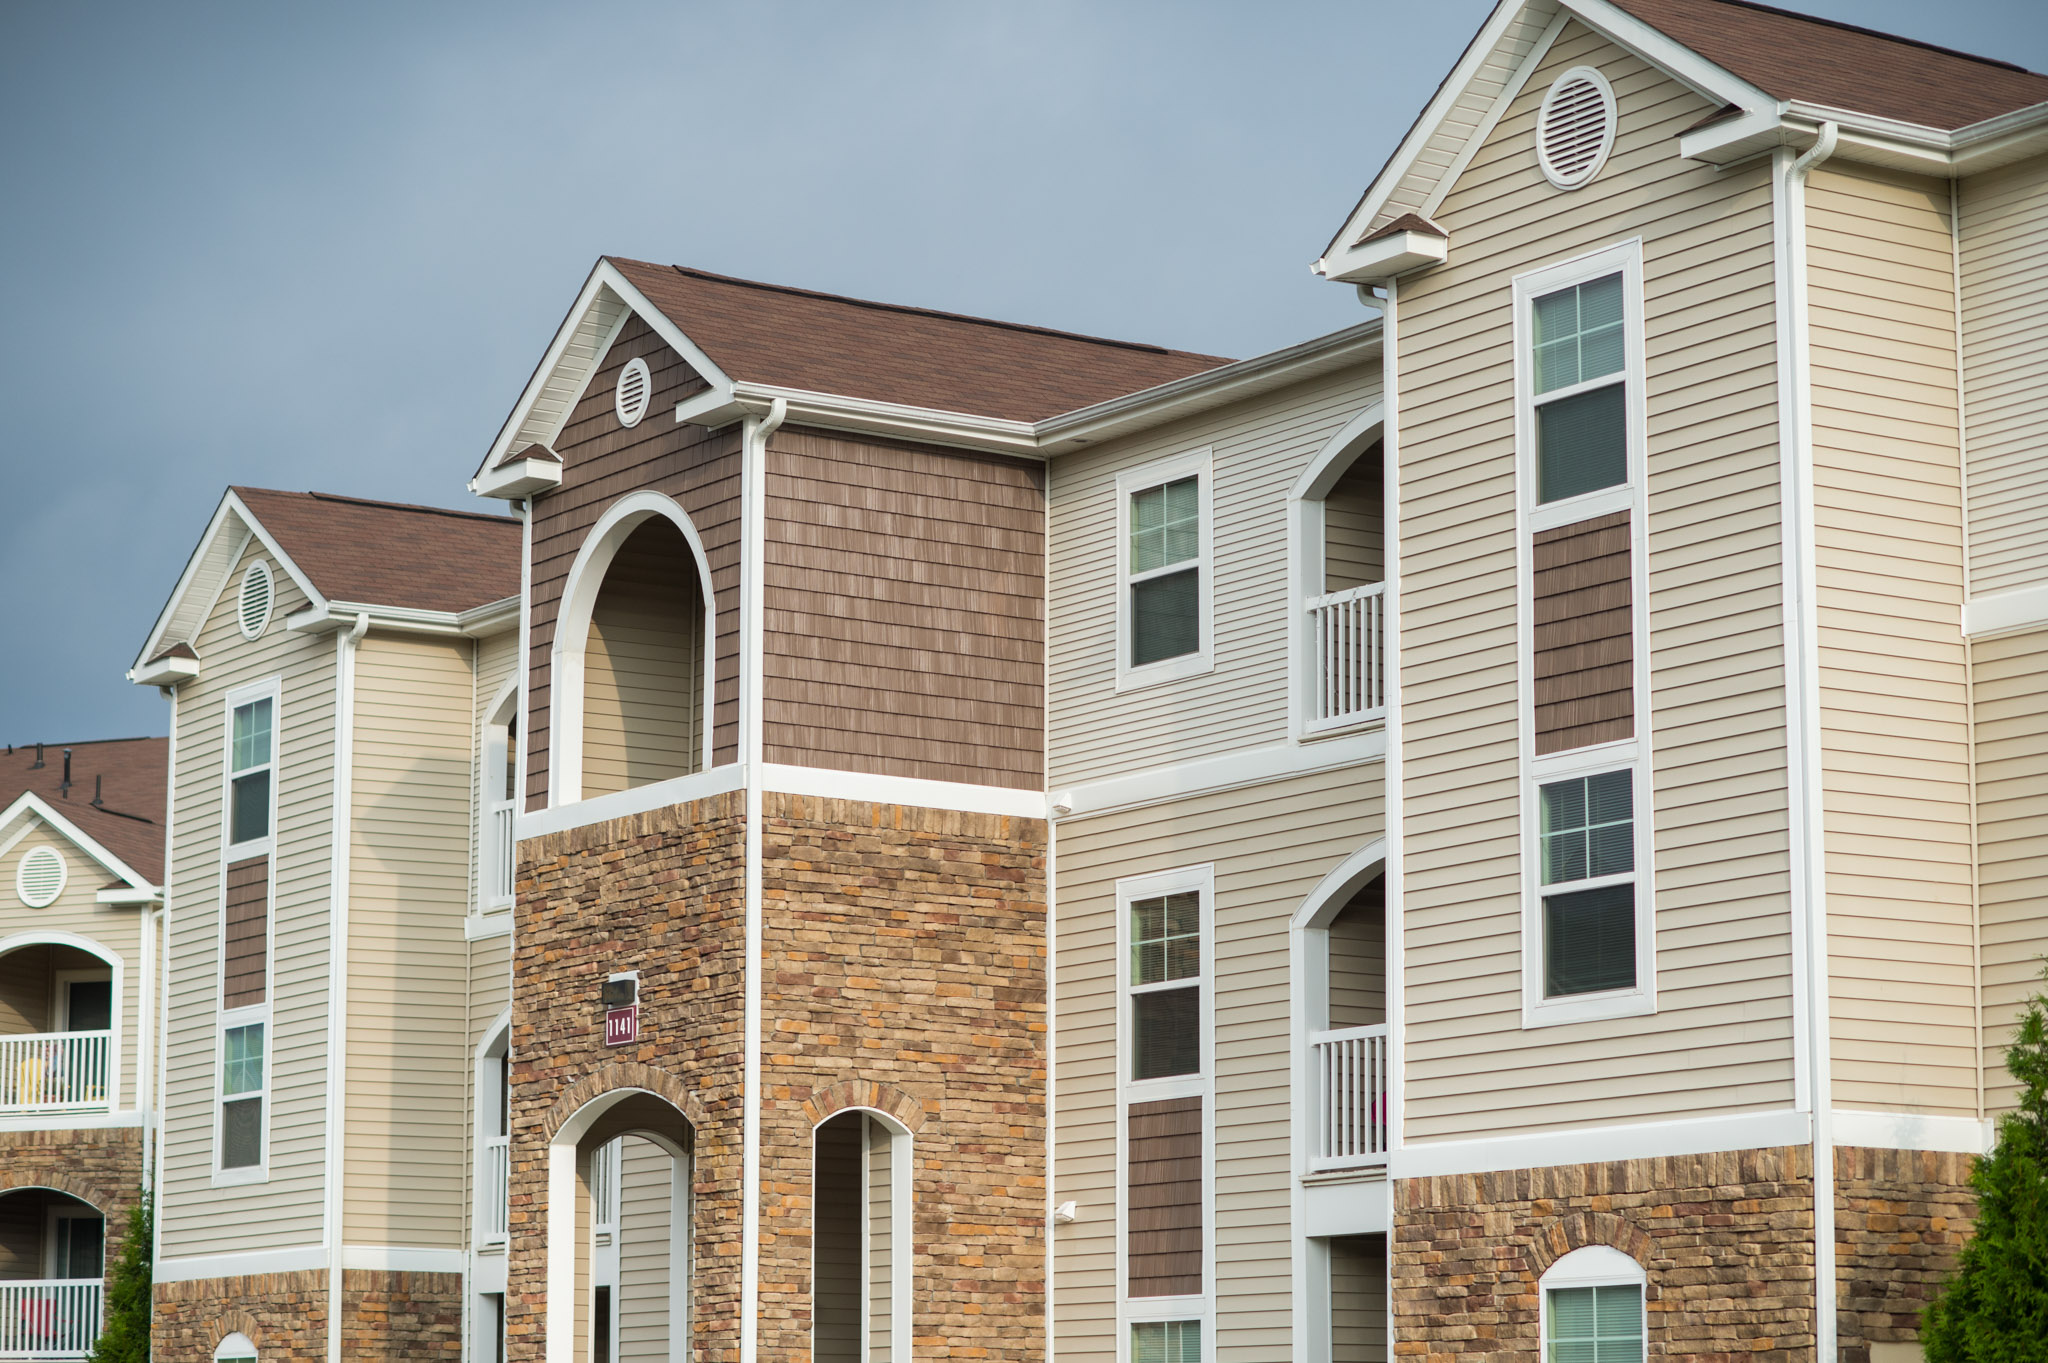 North 38 Exteriors for Web-1063.jpg